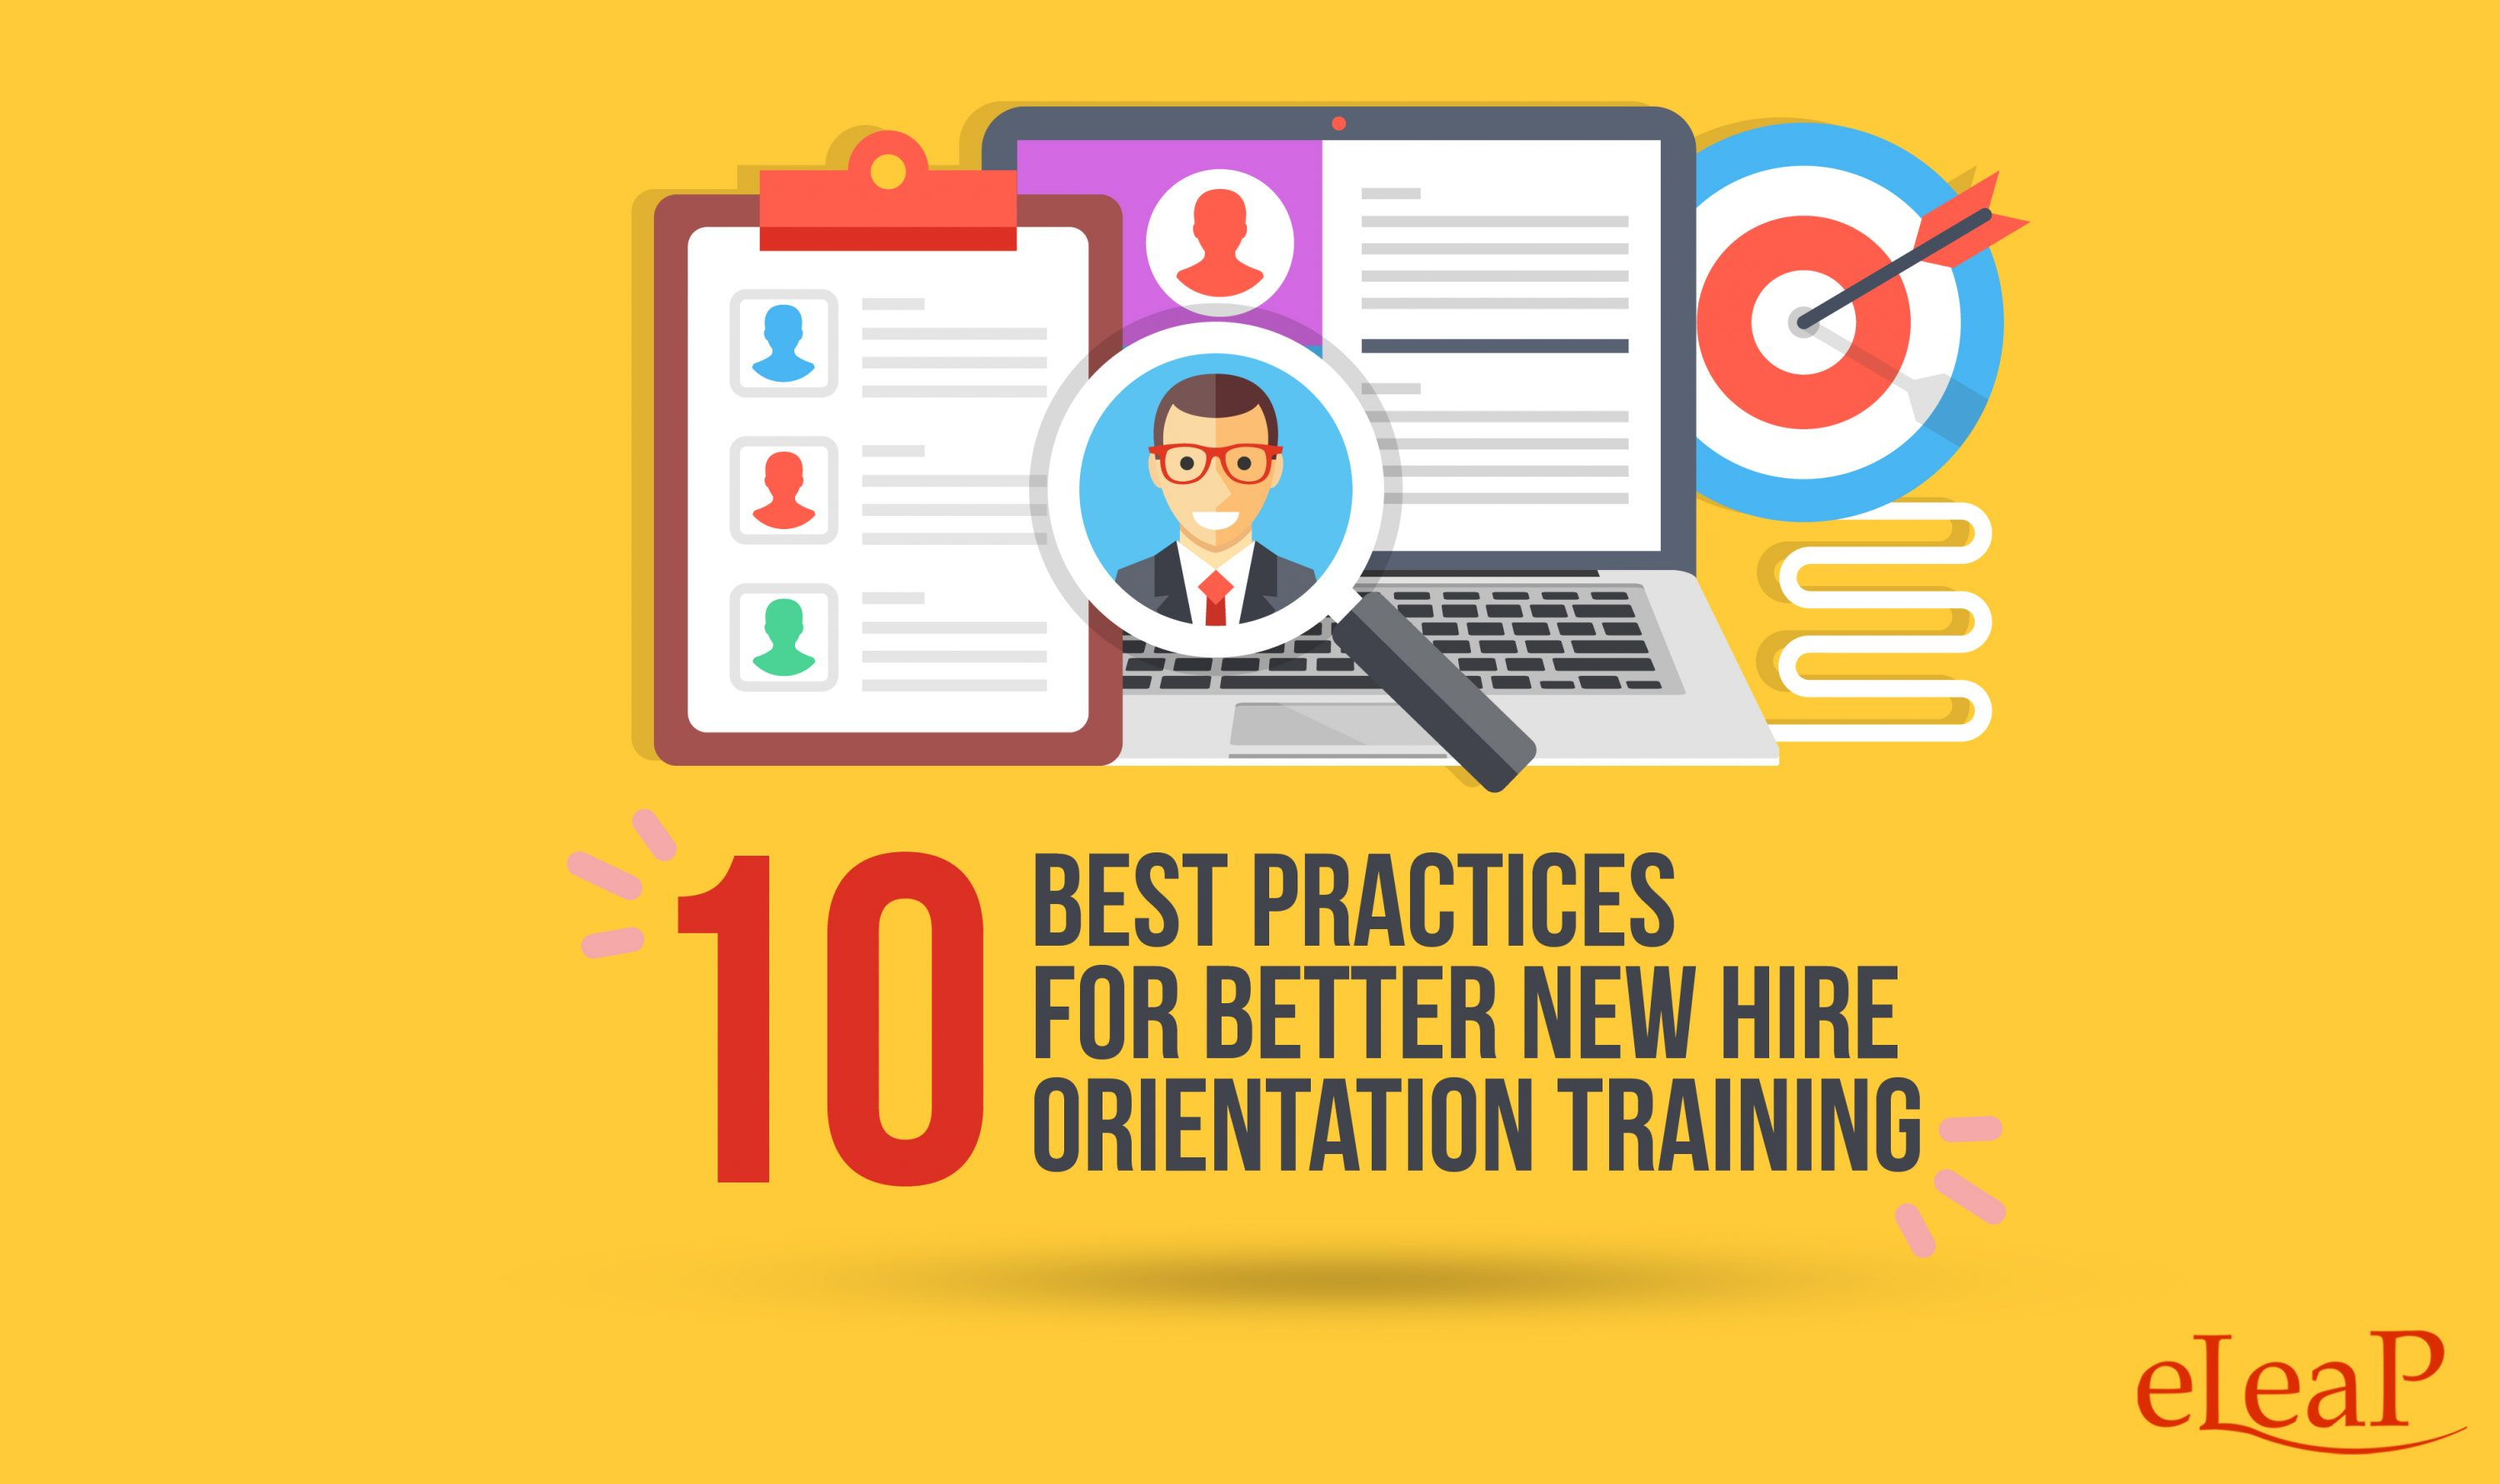 10 best practices for better new hire orientation training